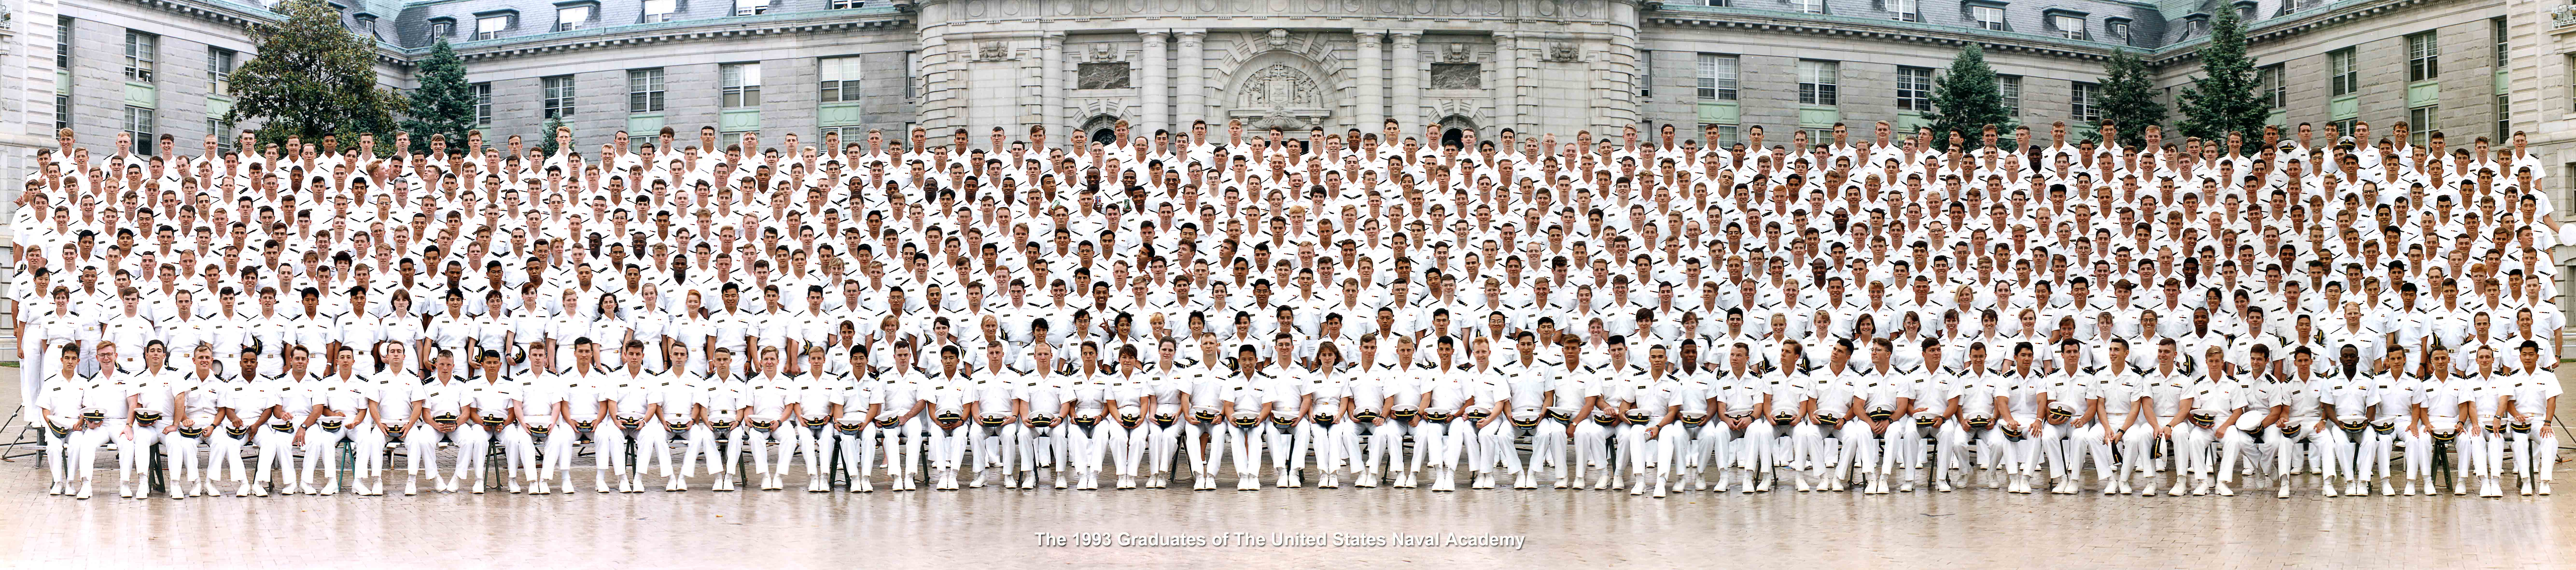 The Graduates Of The U.S. Naval Academy Class Of 1993. Part 35